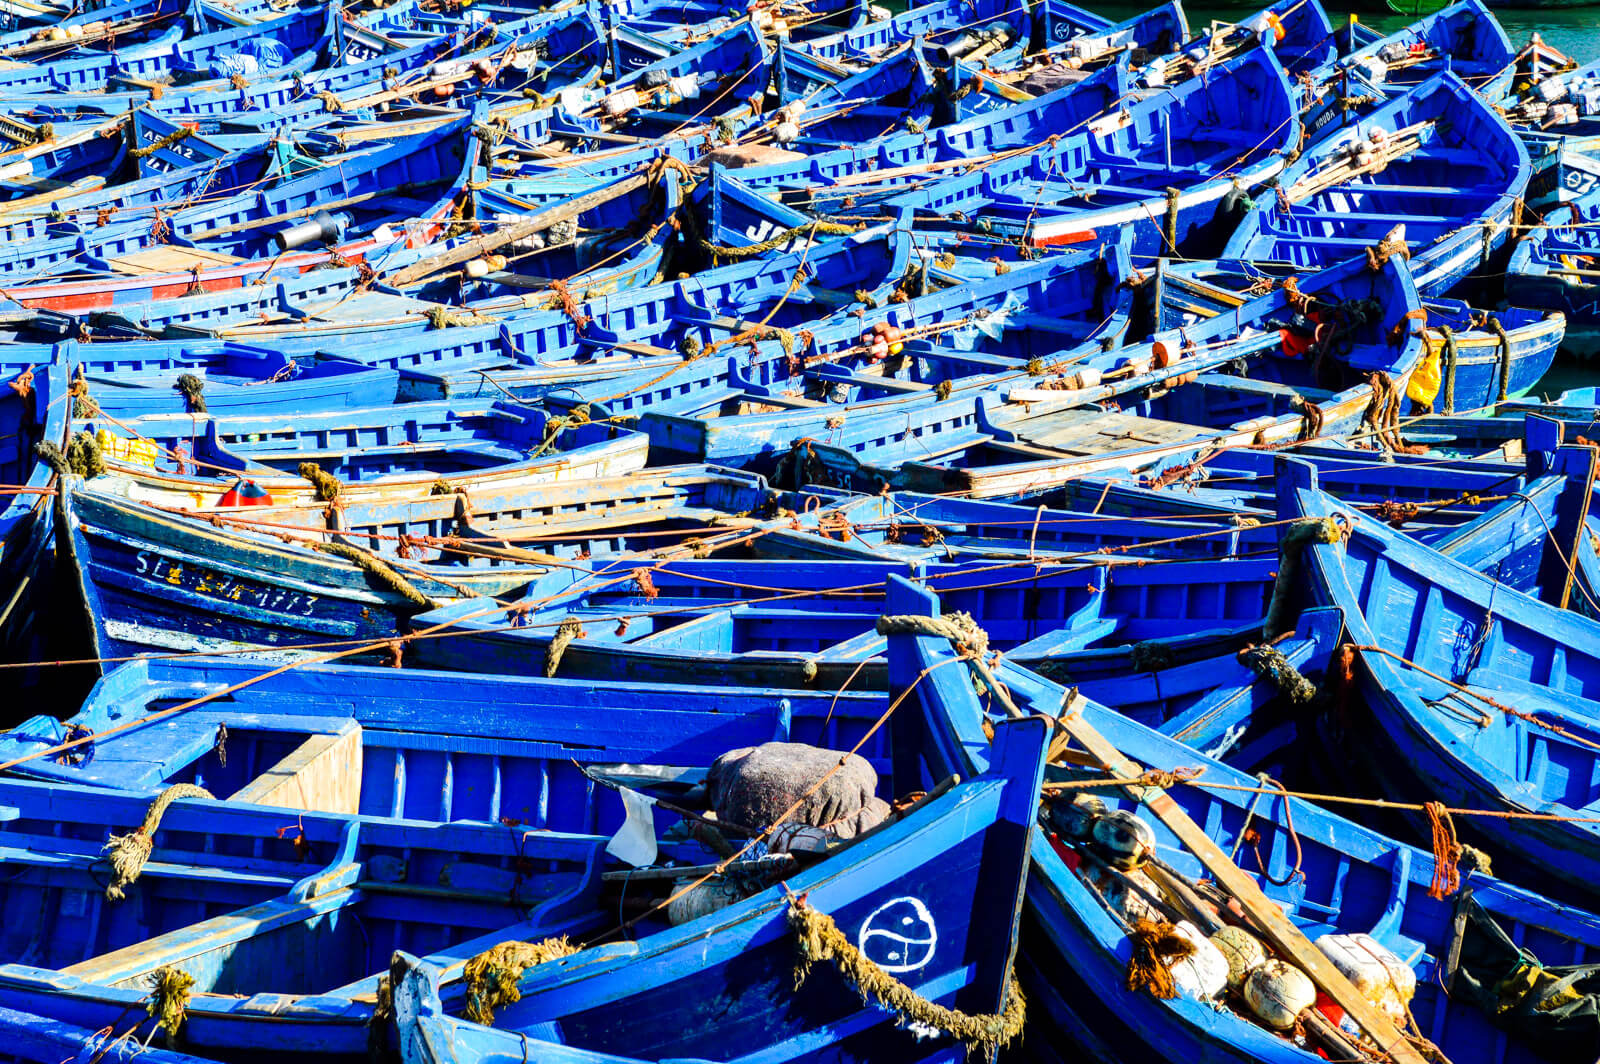 The Funky Boats of Essaouira